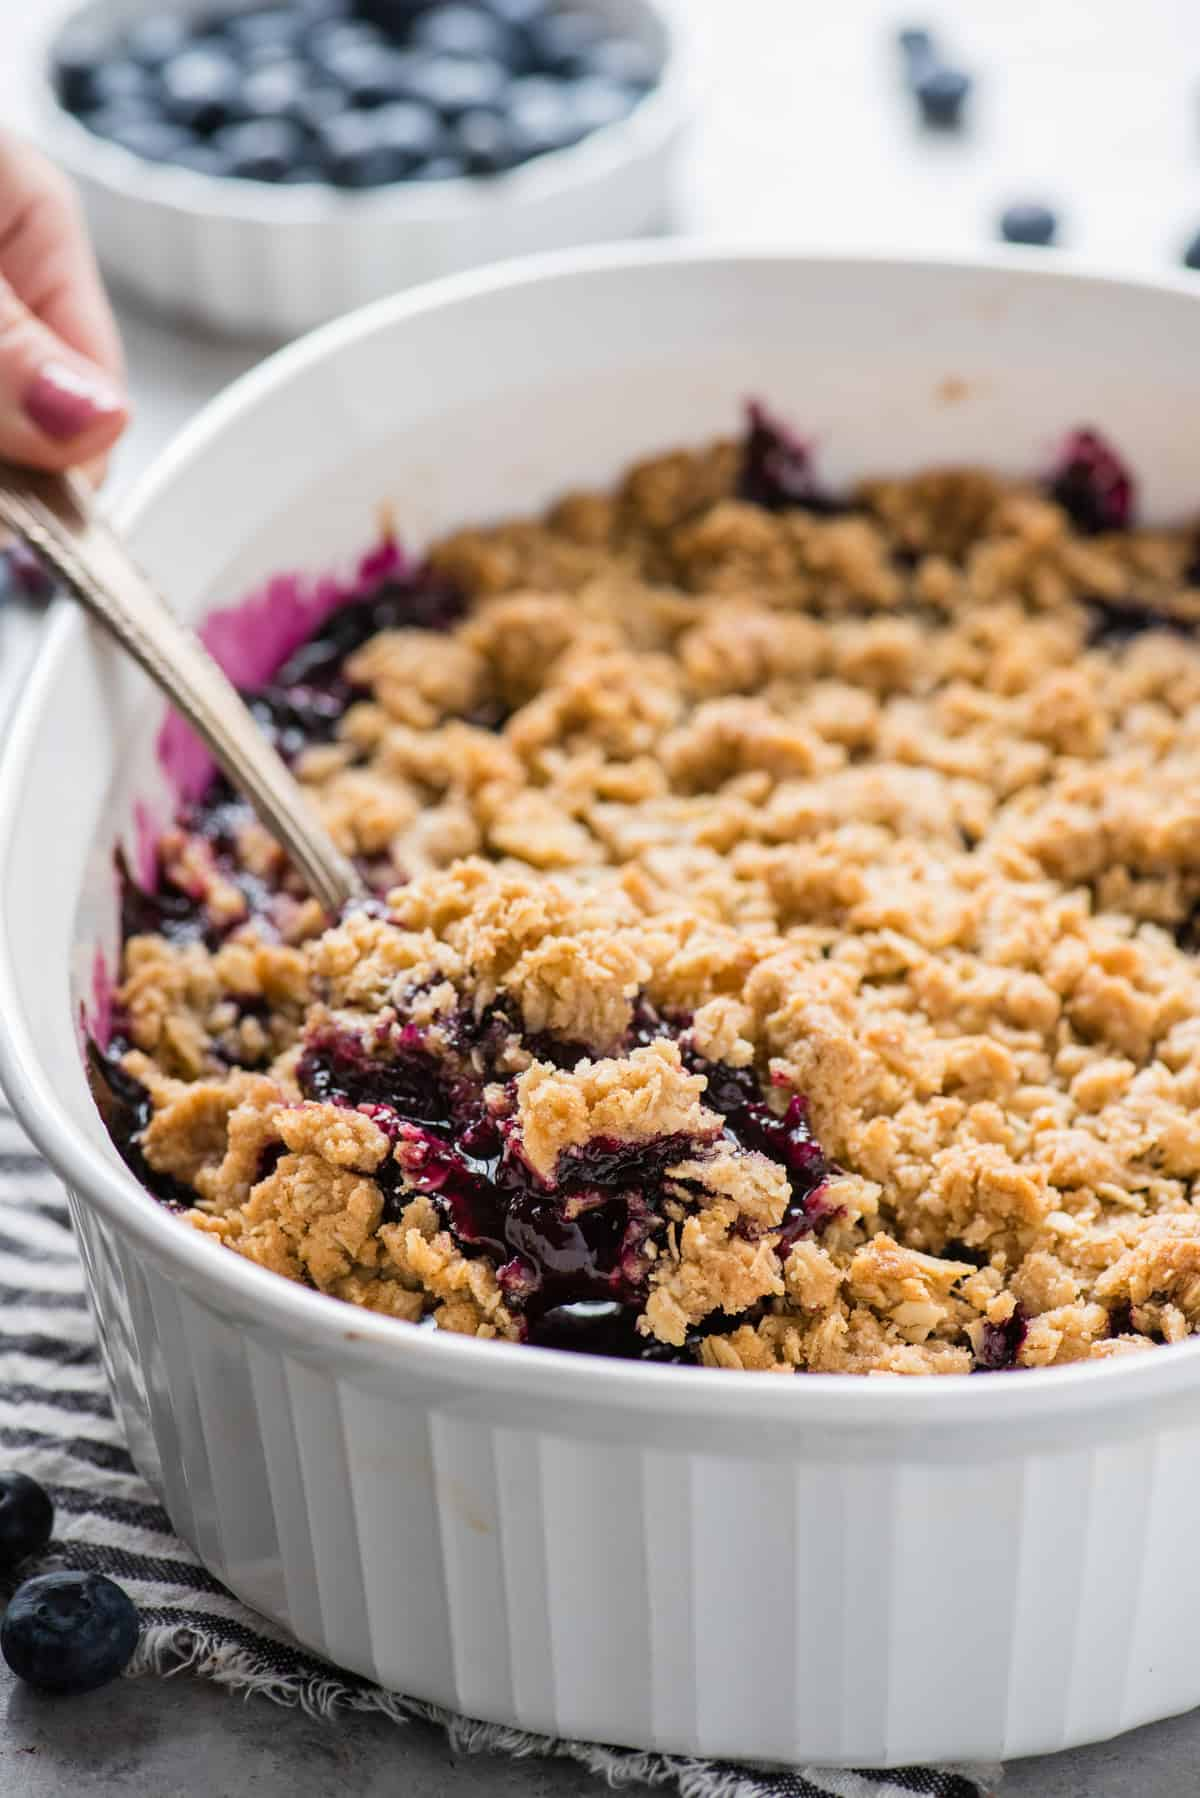 blueberry crisp in a white baking dish with a metal spoon